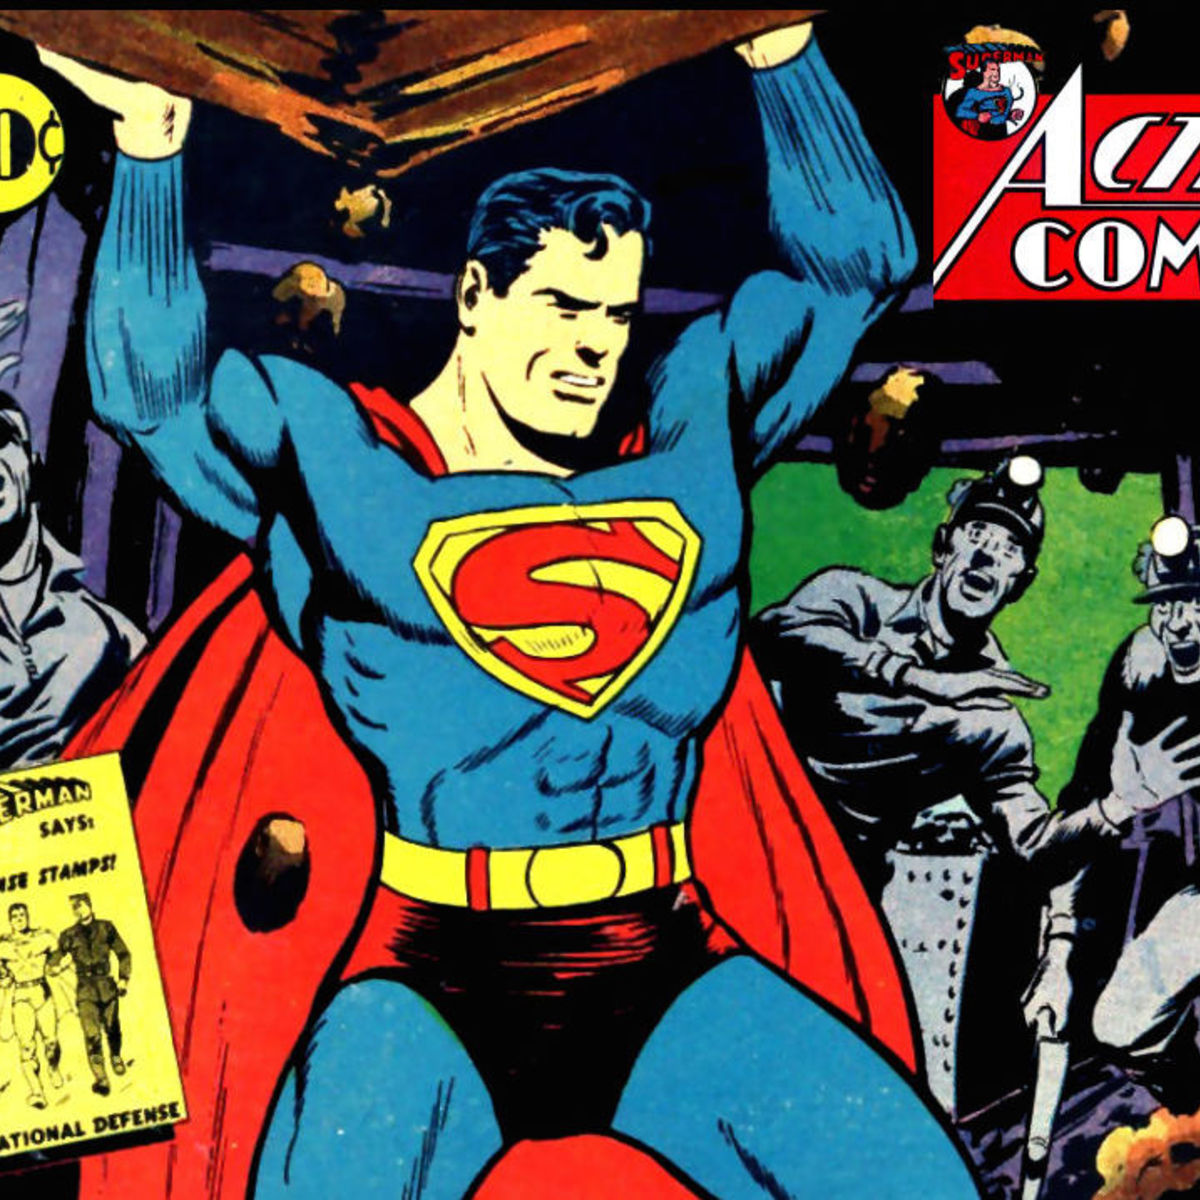 action_comics_50_by_superman8193-d4e7kab.jpg